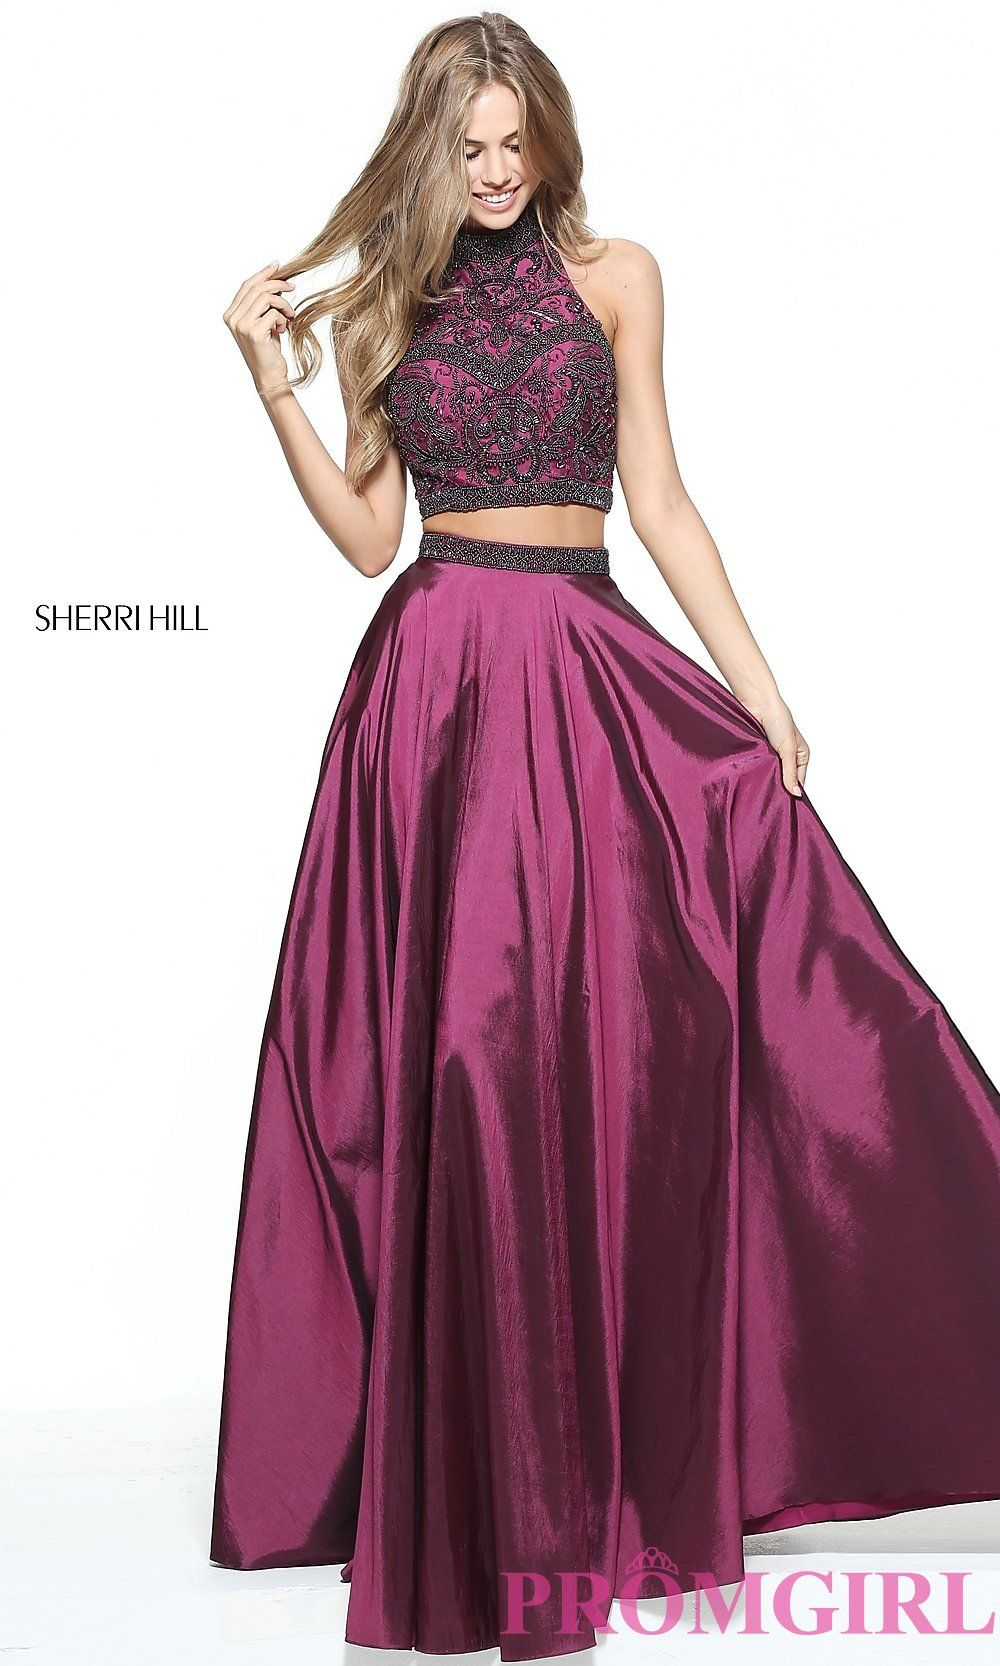 Image of Sherri Hill two-piece prom dress with beaded top. Front ...